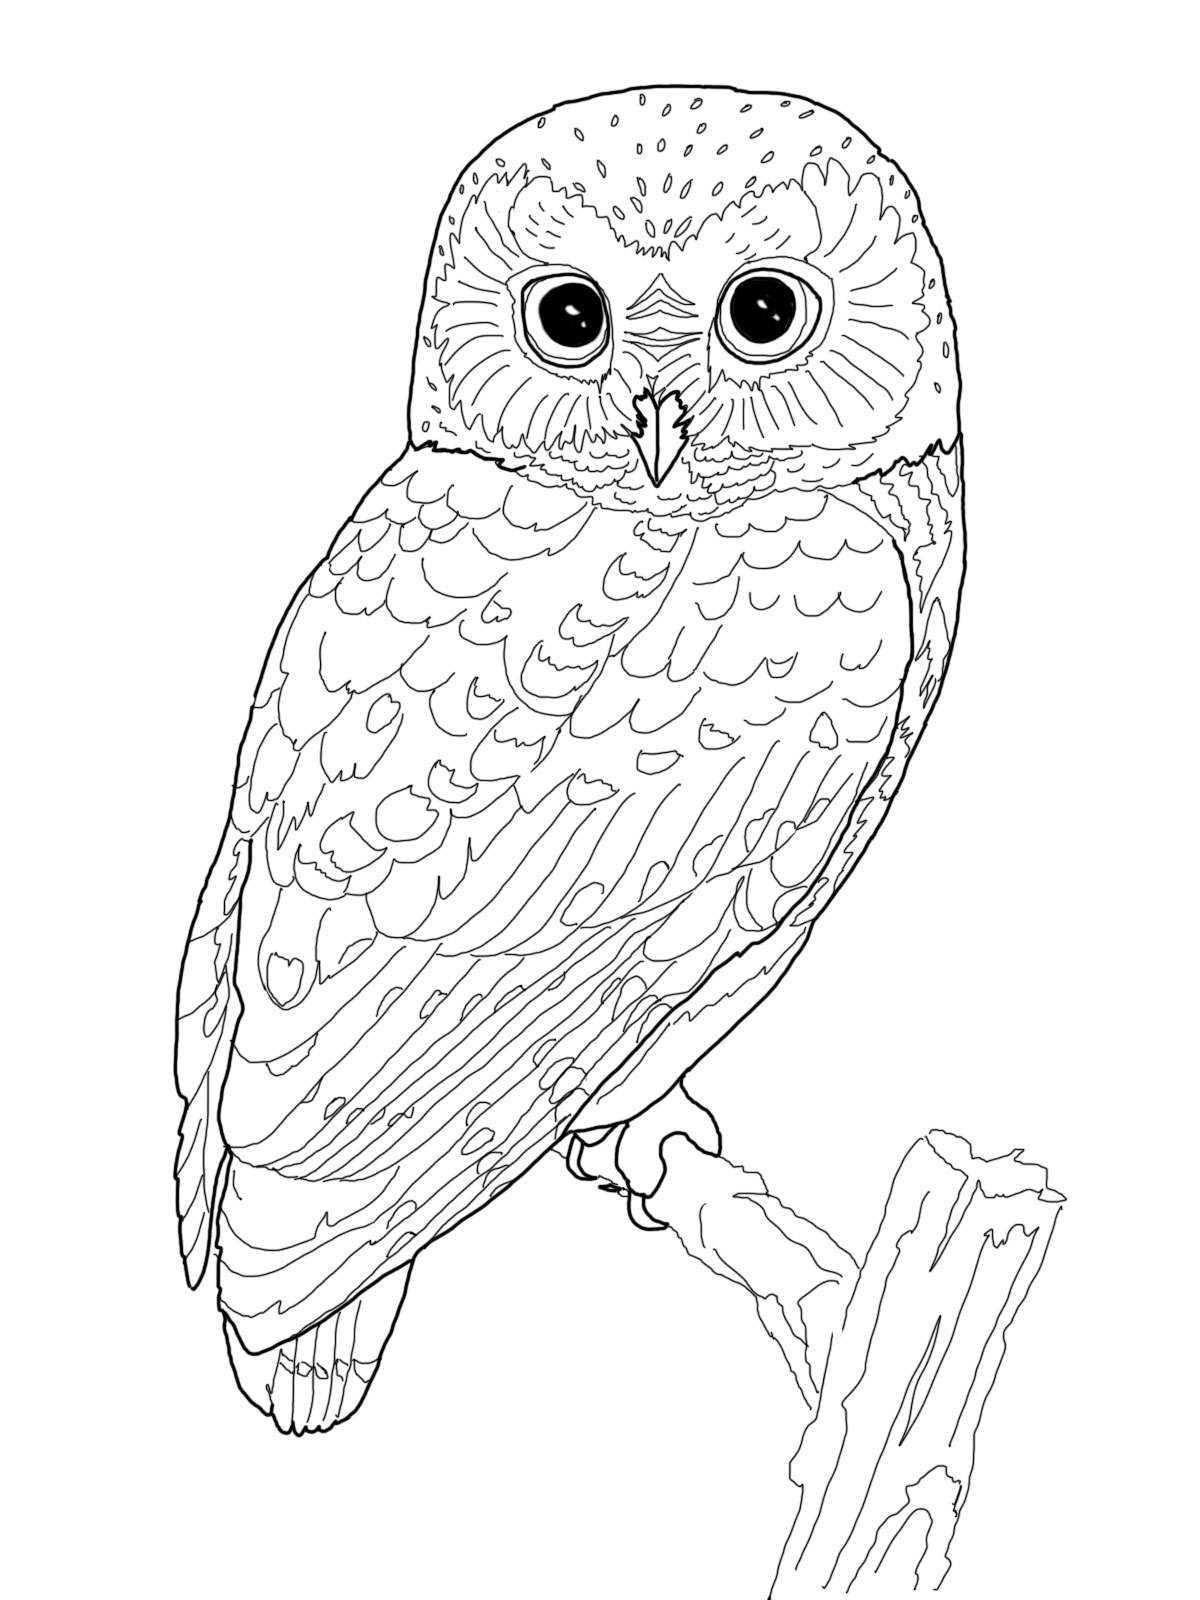 Coloring book owl pictures